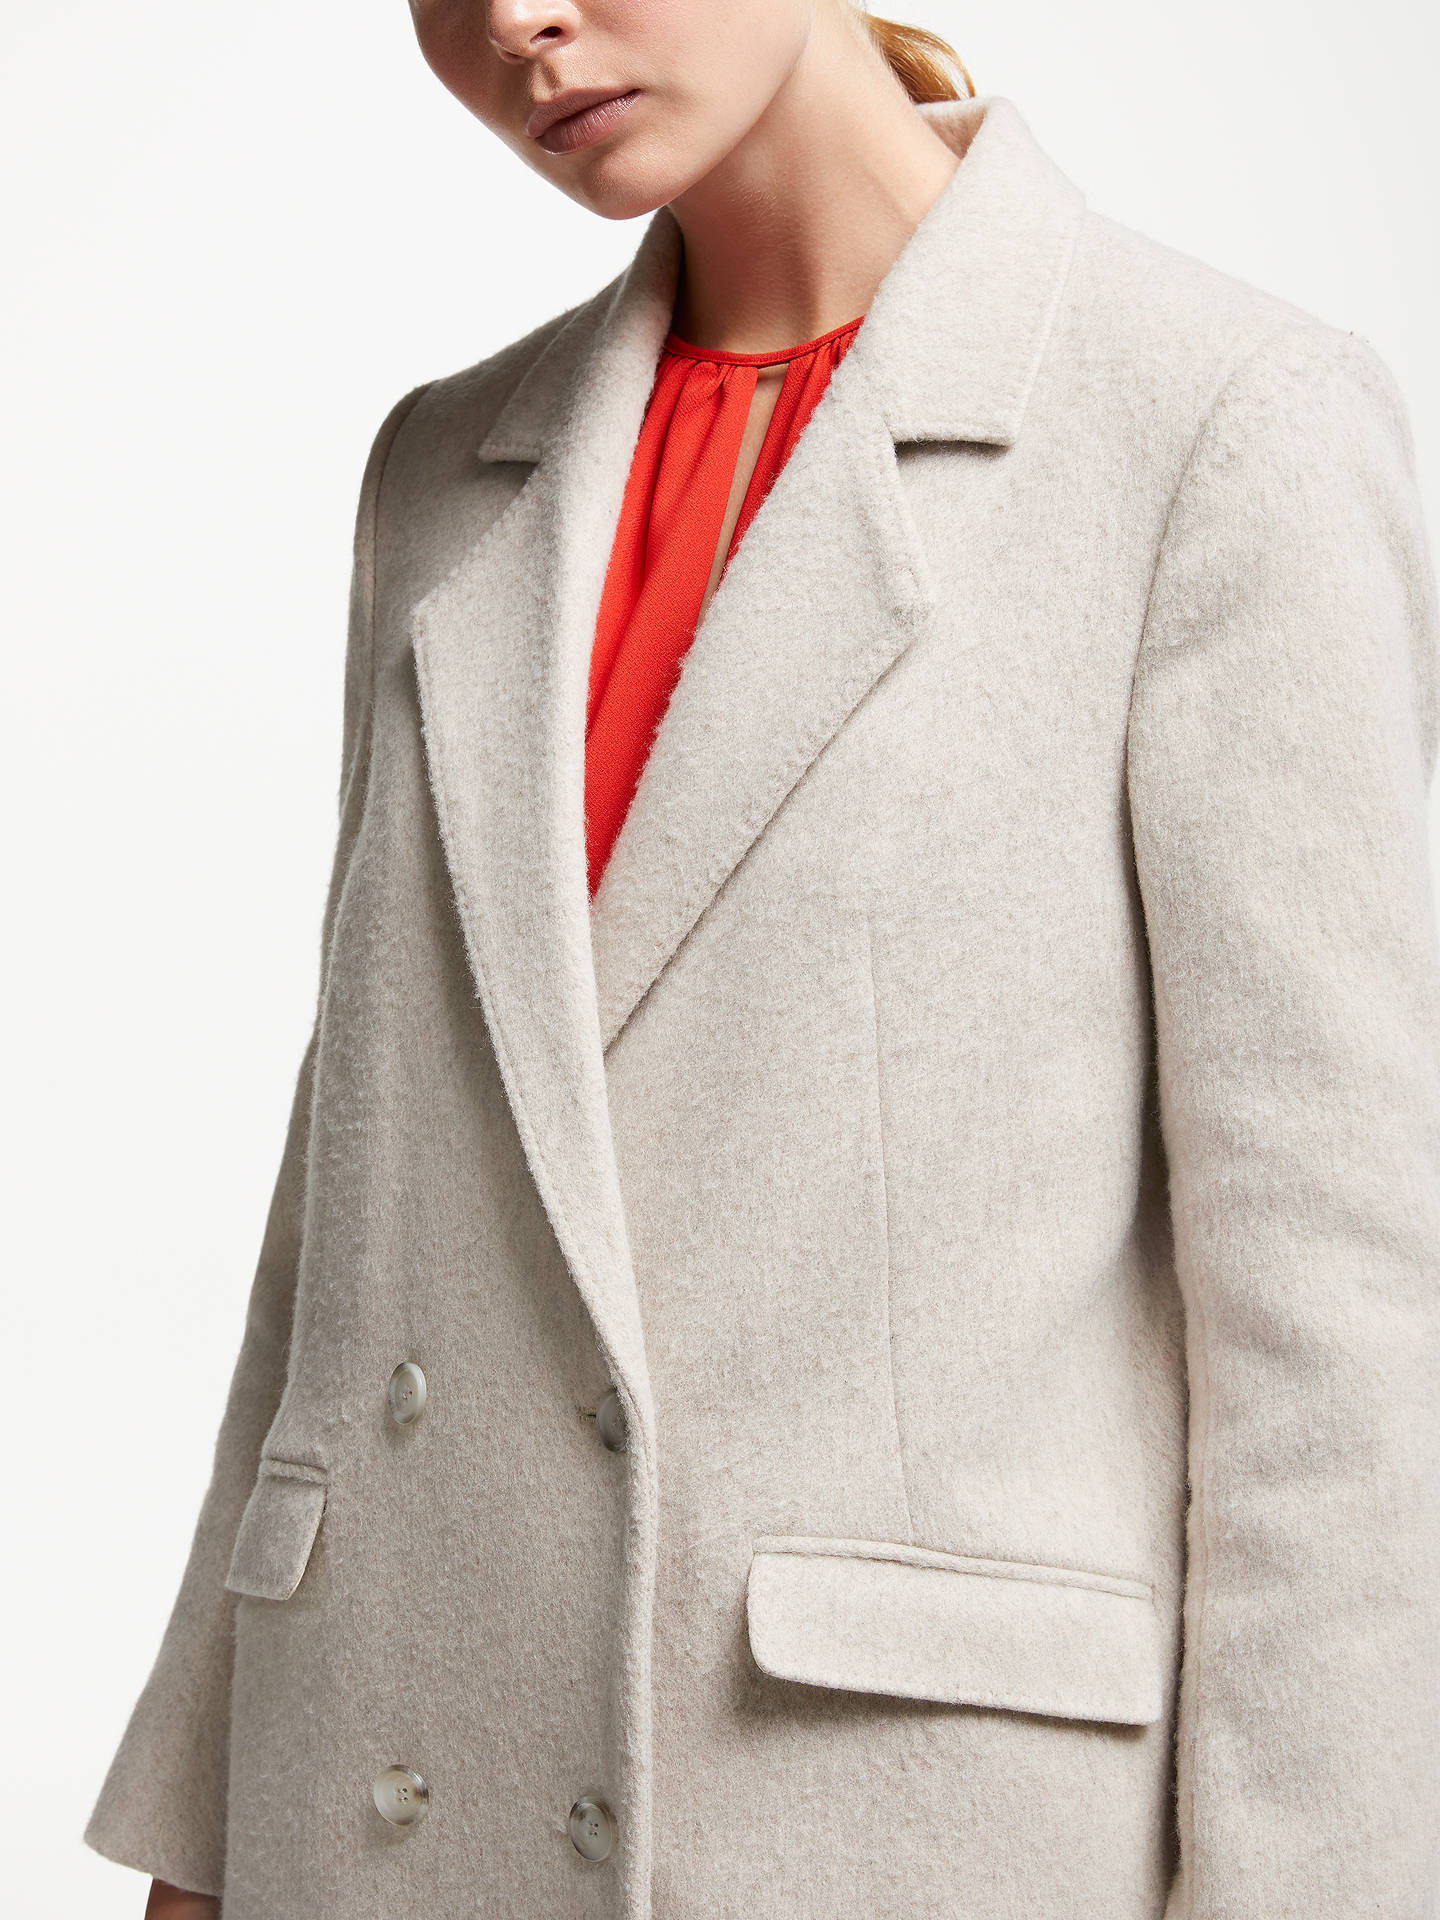 BuyJohn Lewis & Partners Double Breasted Coat, Oatmeal, 8 Online at johnlewis.com